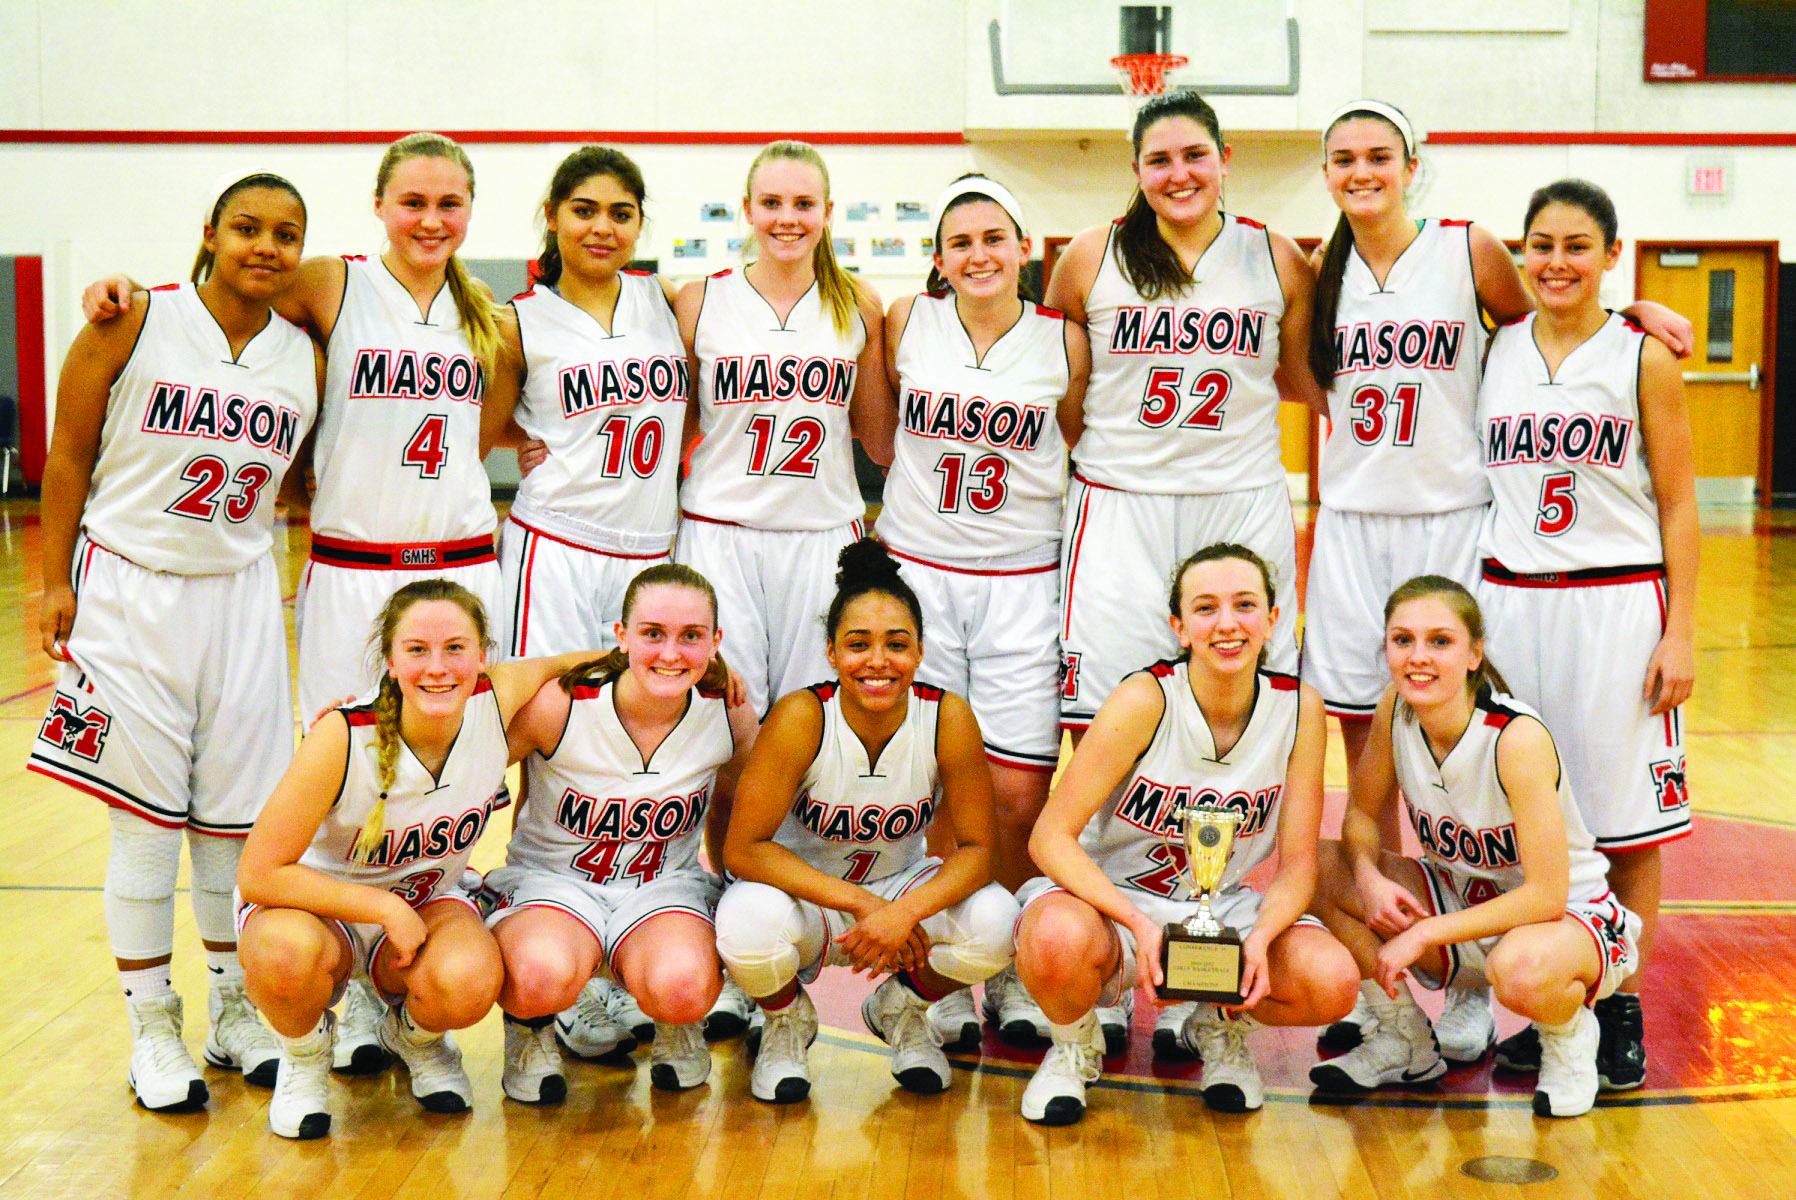 Conference 35 champions, the George Mason Mustangs girls basketball team won its second consecutive conference title Tuesday. (Photo: Carol Sly)